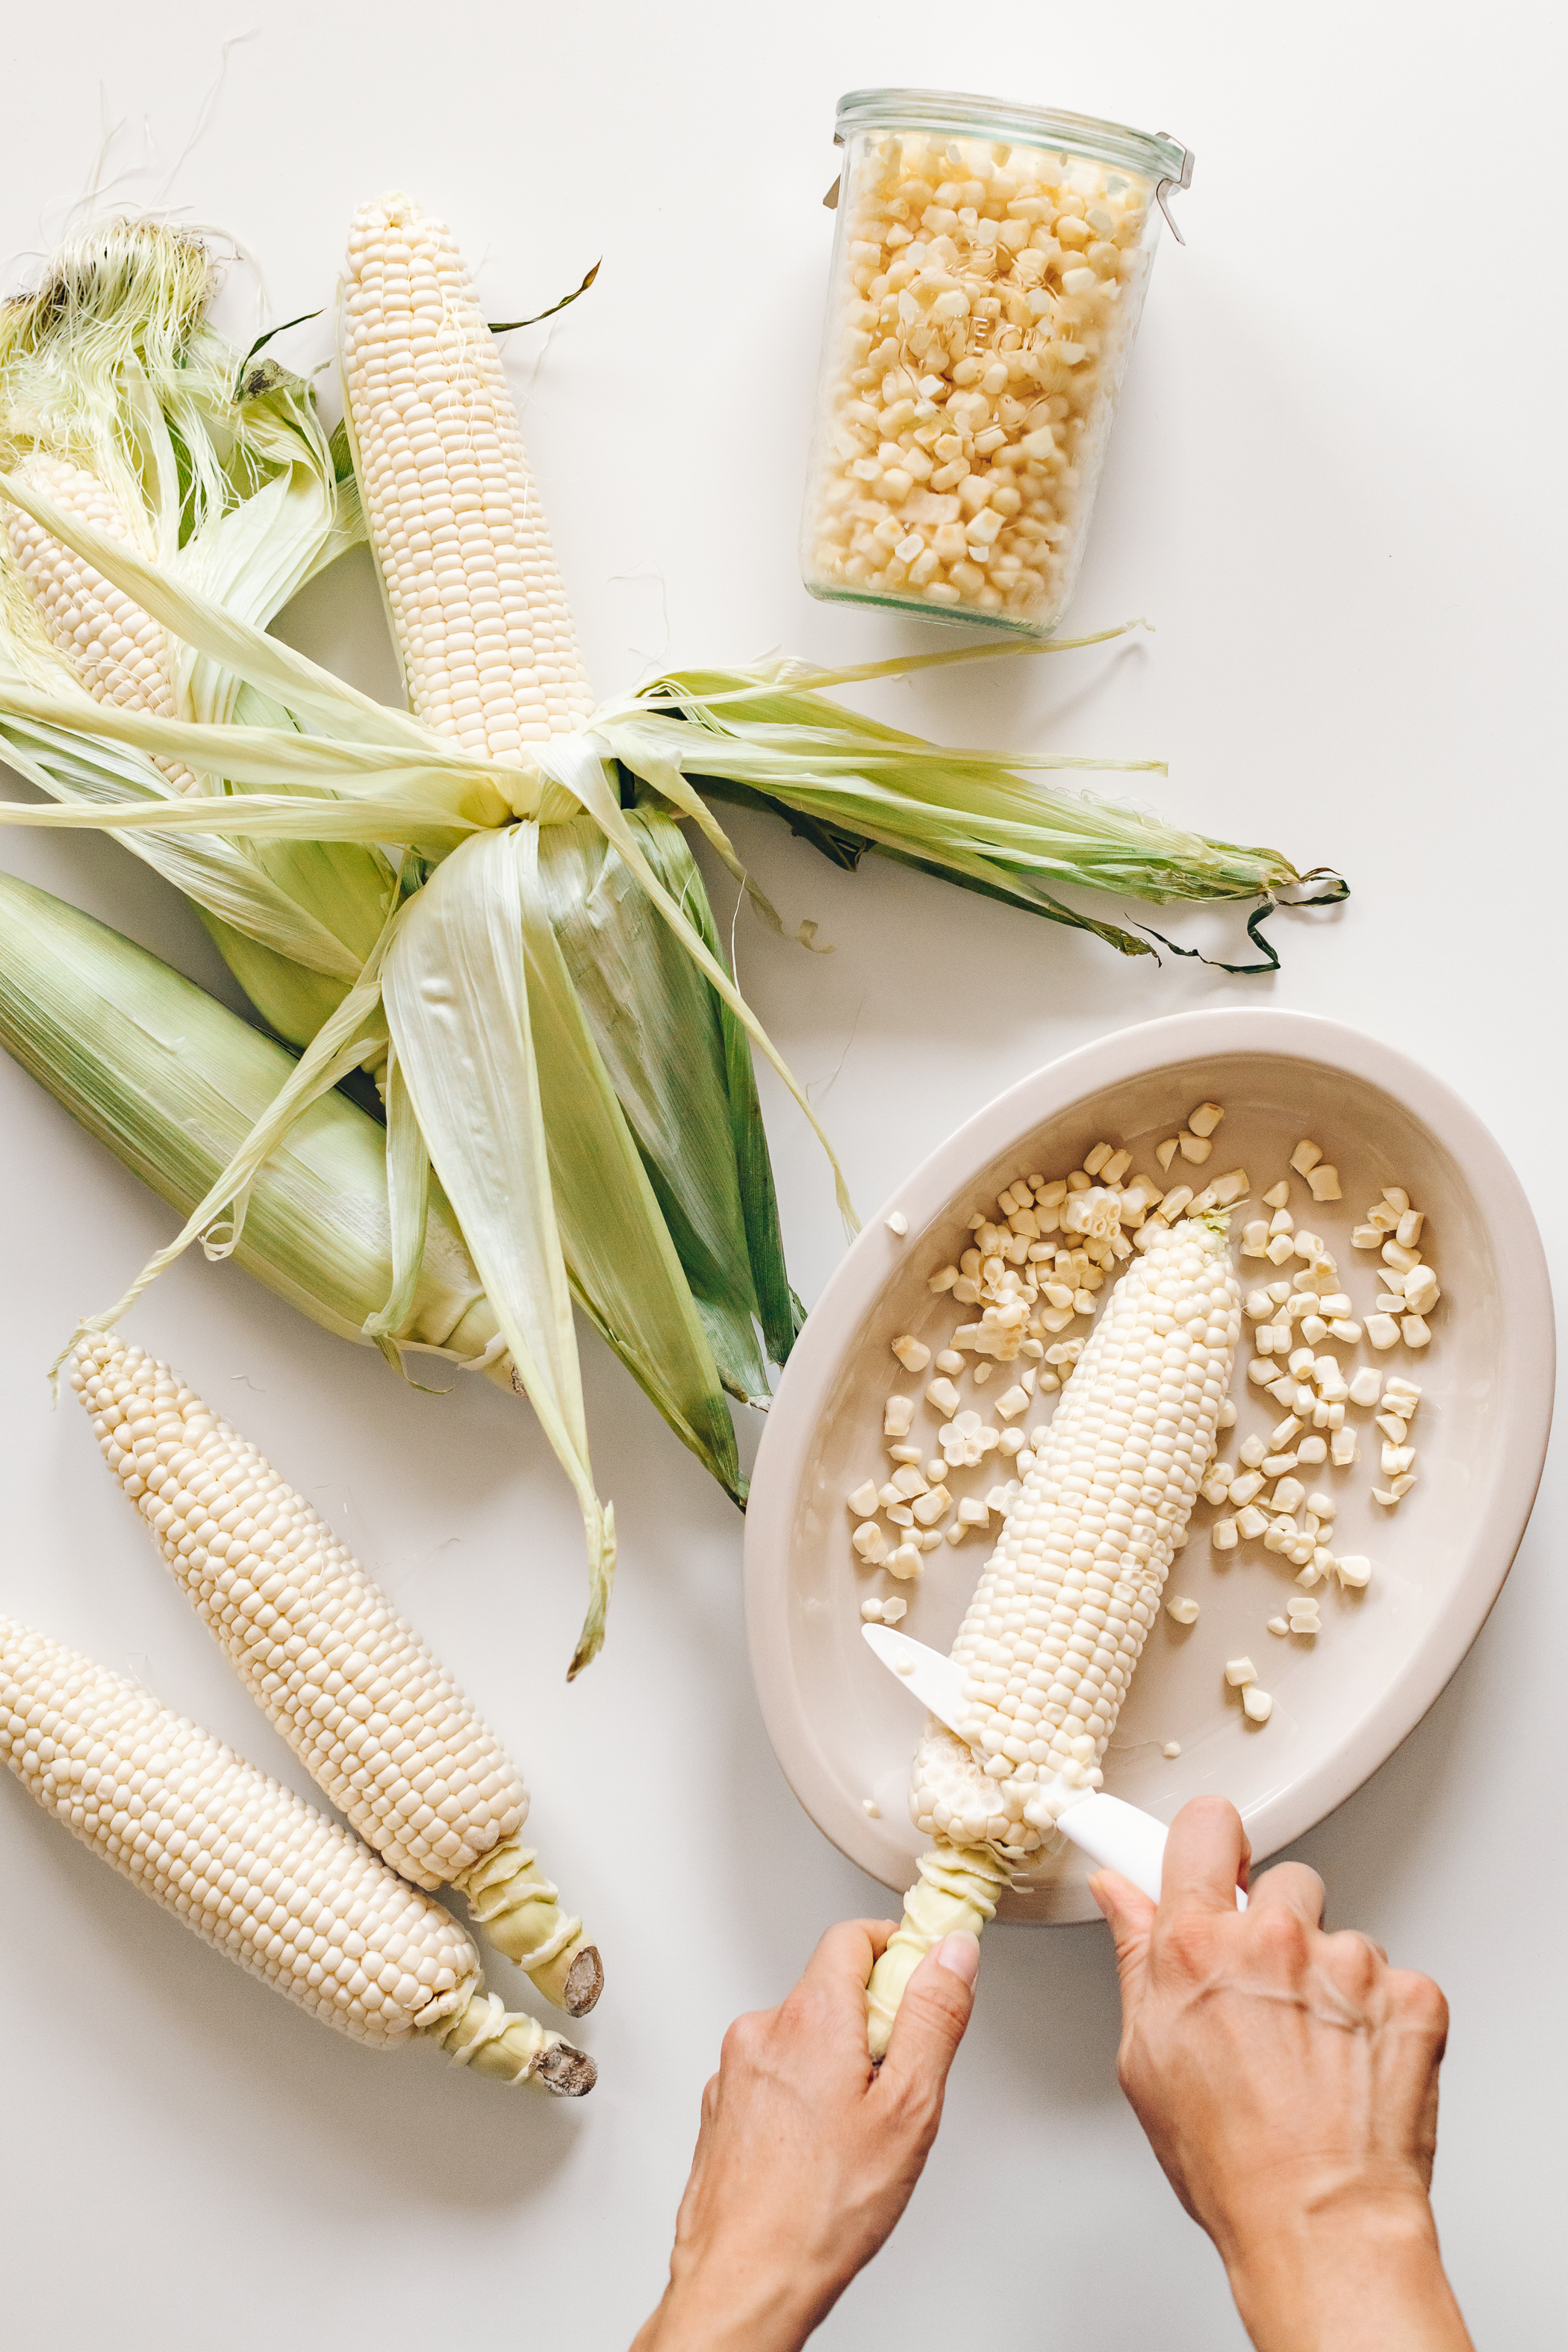 How to Select & Store Corn by Jessie May